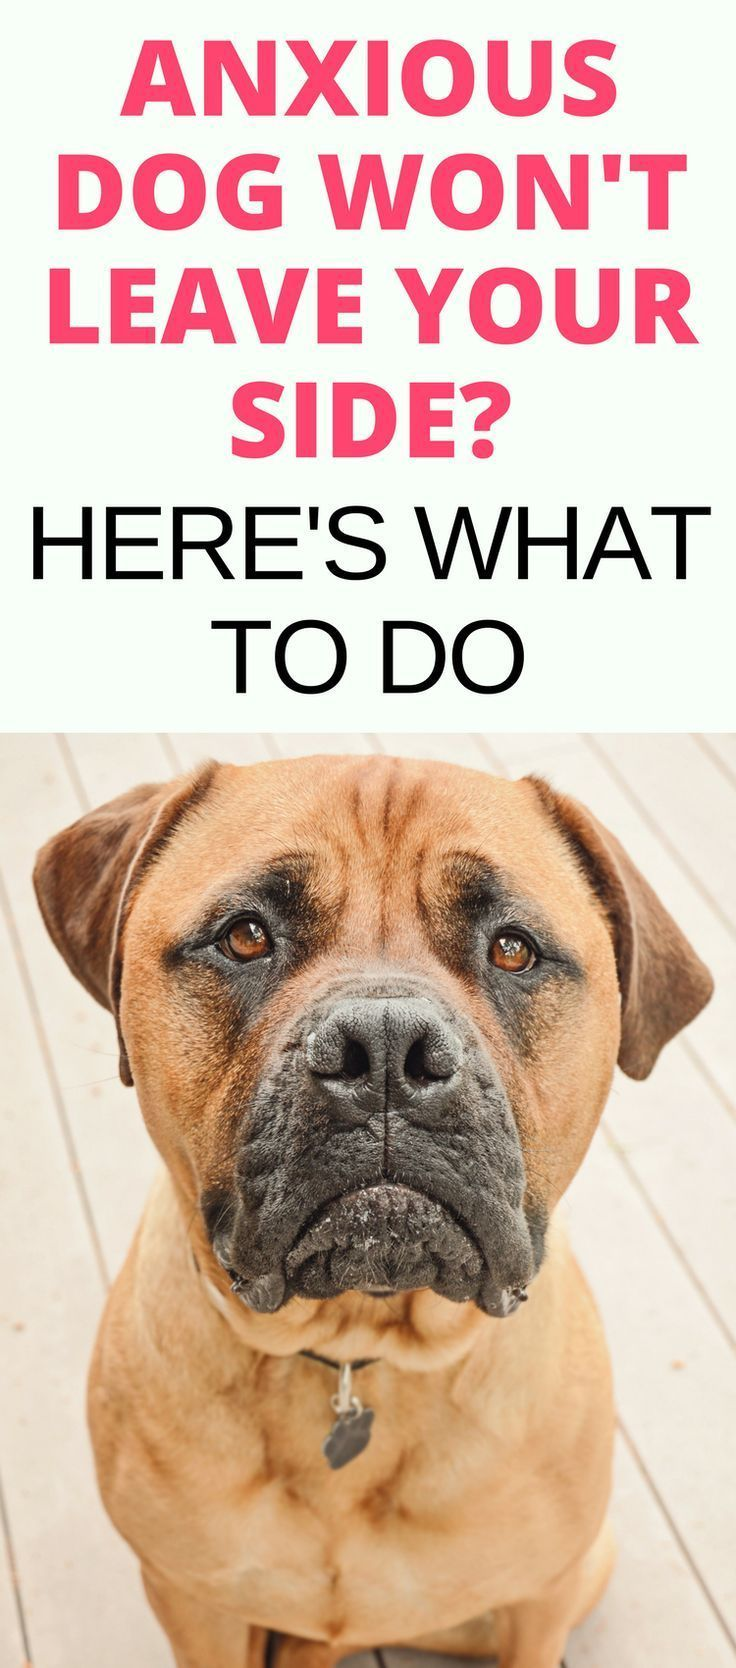 Does your dog suffer from anxiety? Separation anxiety in dogs and fear aggression in dogs can be common. Read this guide to Anxiety In Dogs to find out what it is along with these dog anxiety remedies and tips to help calm your pet.